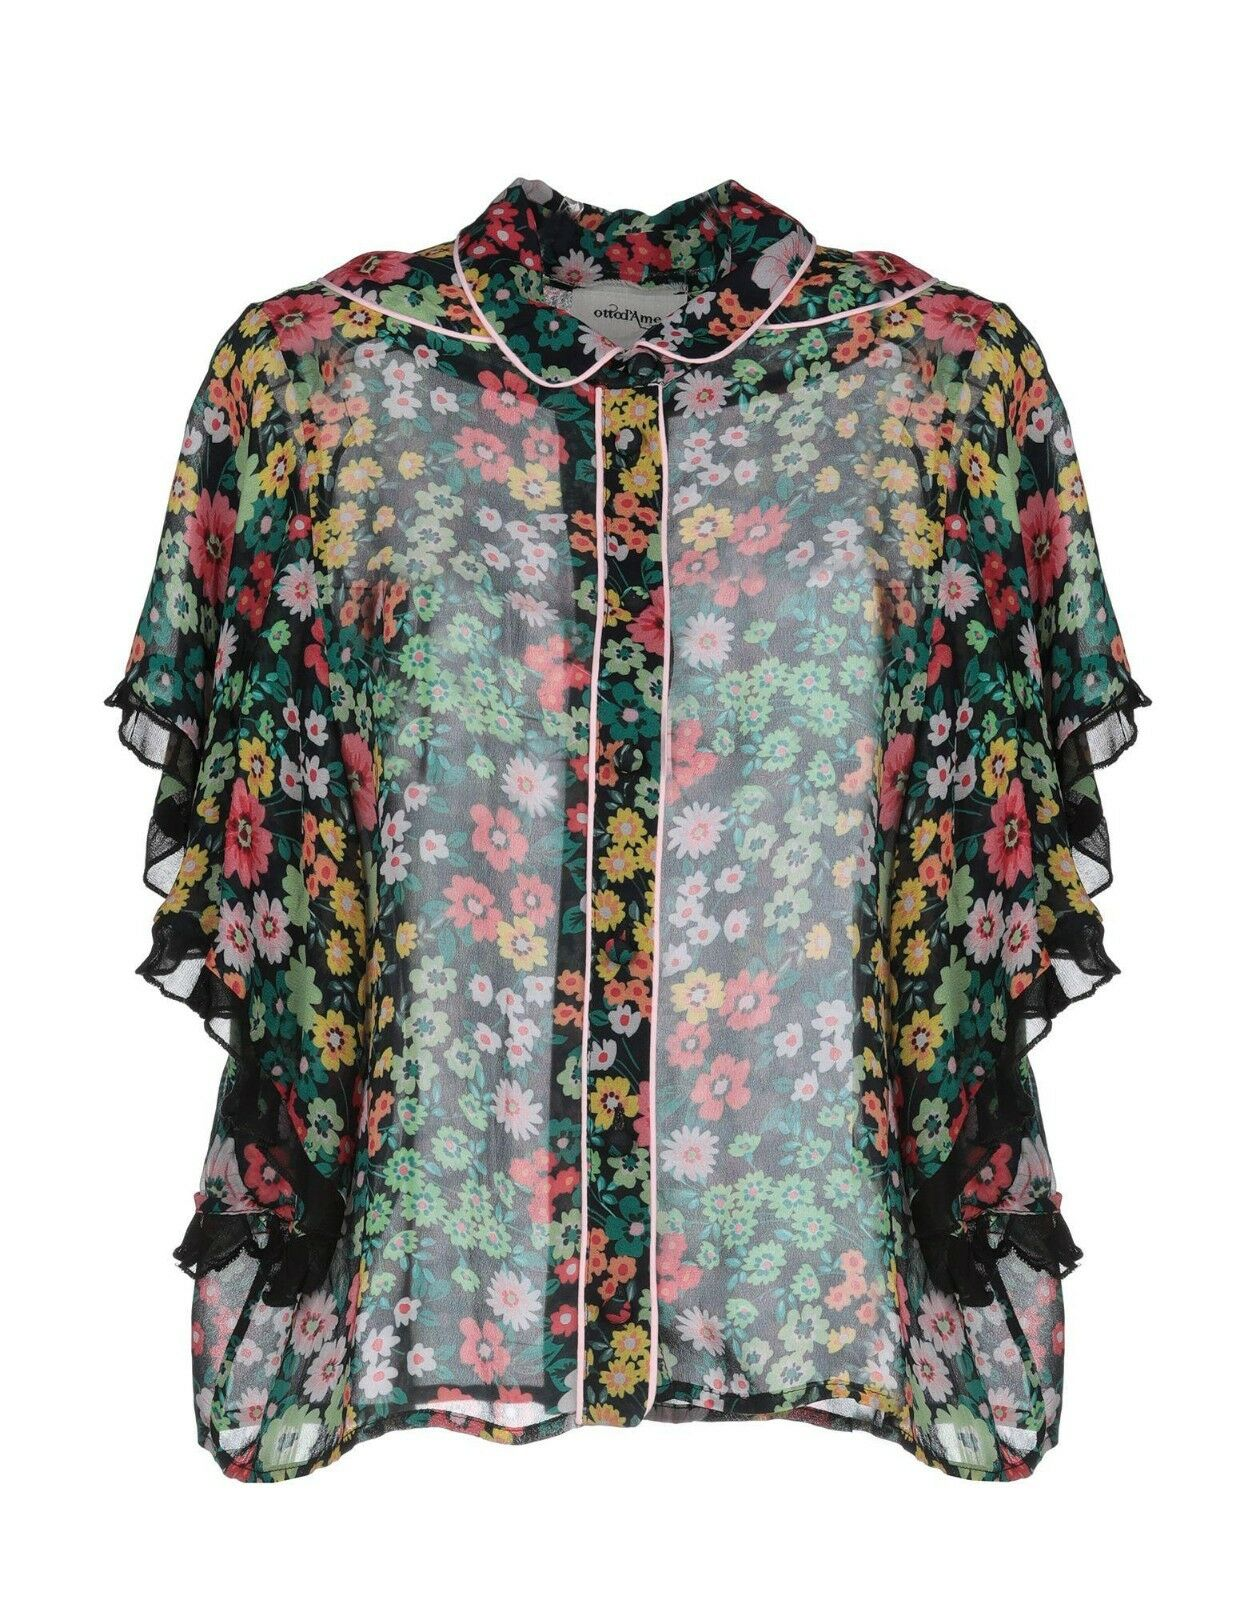 Anthropologie Ottod'Ame schwarz Floral Sheer Button Down Shirt Ruffle Sleeves Sz 6